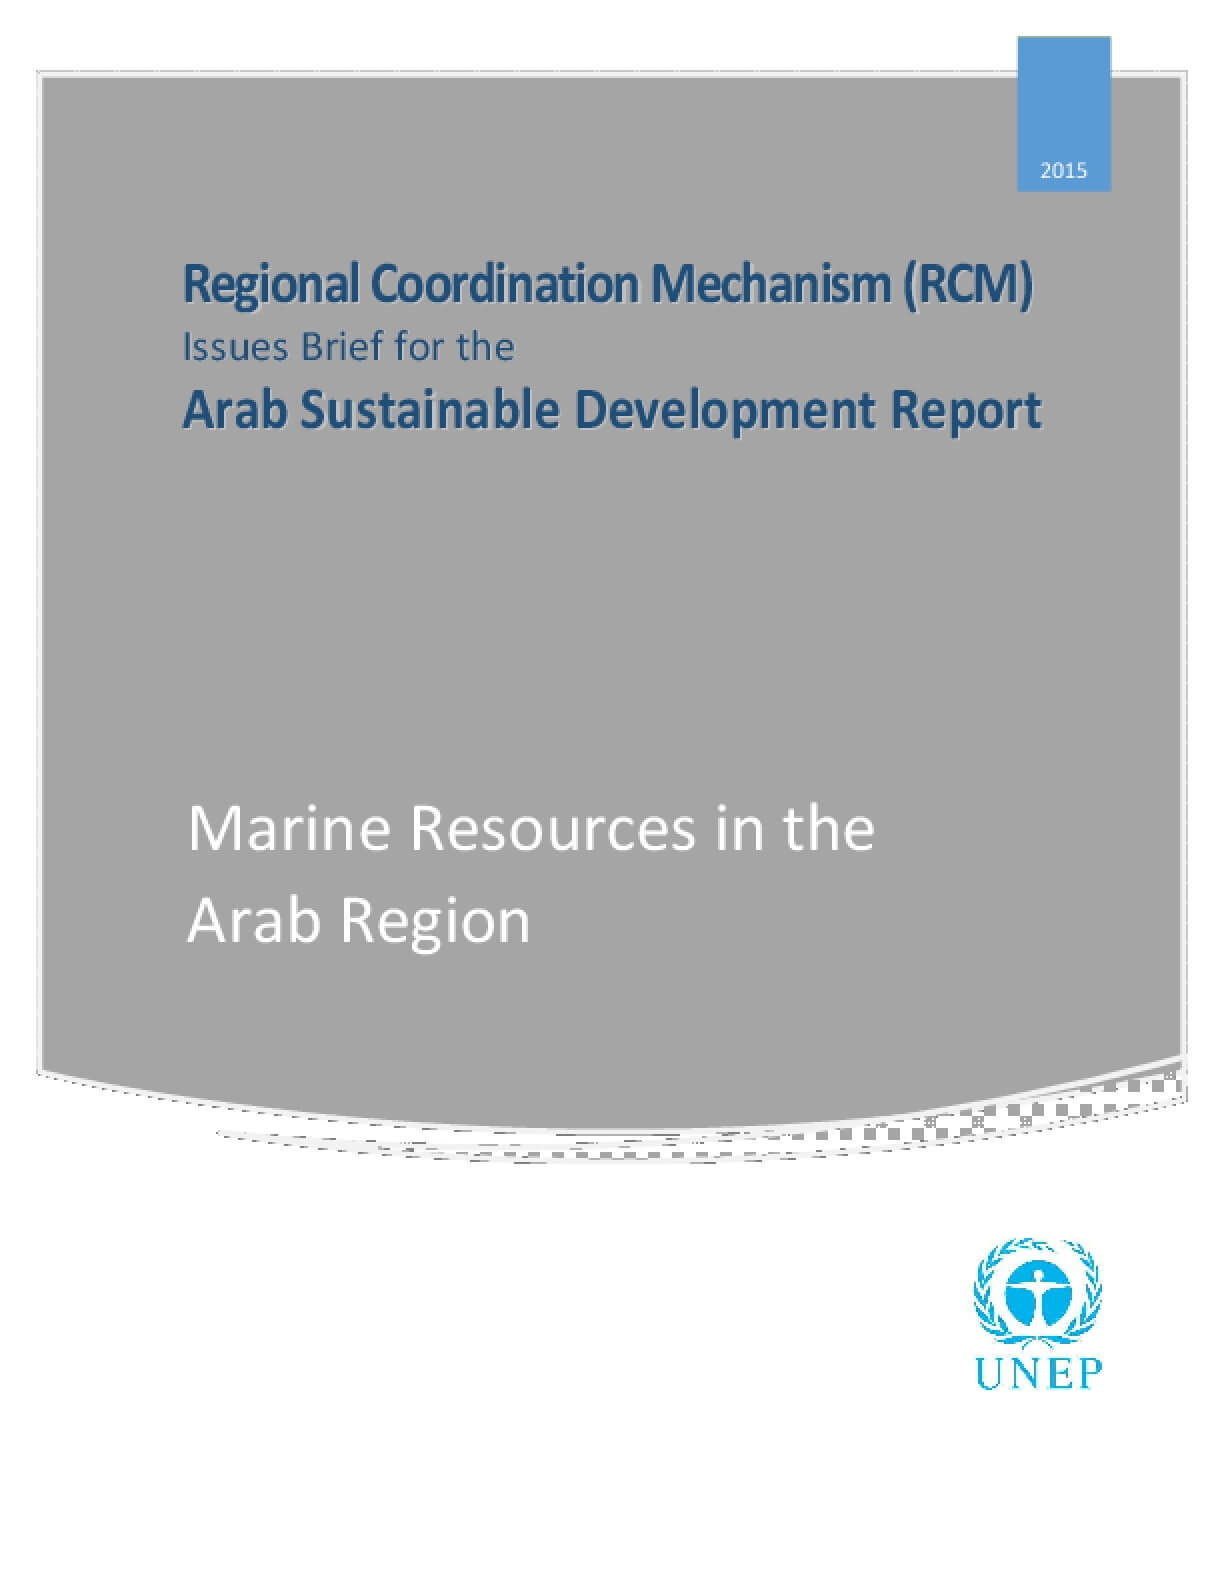 Marine Resources in the Arab Region